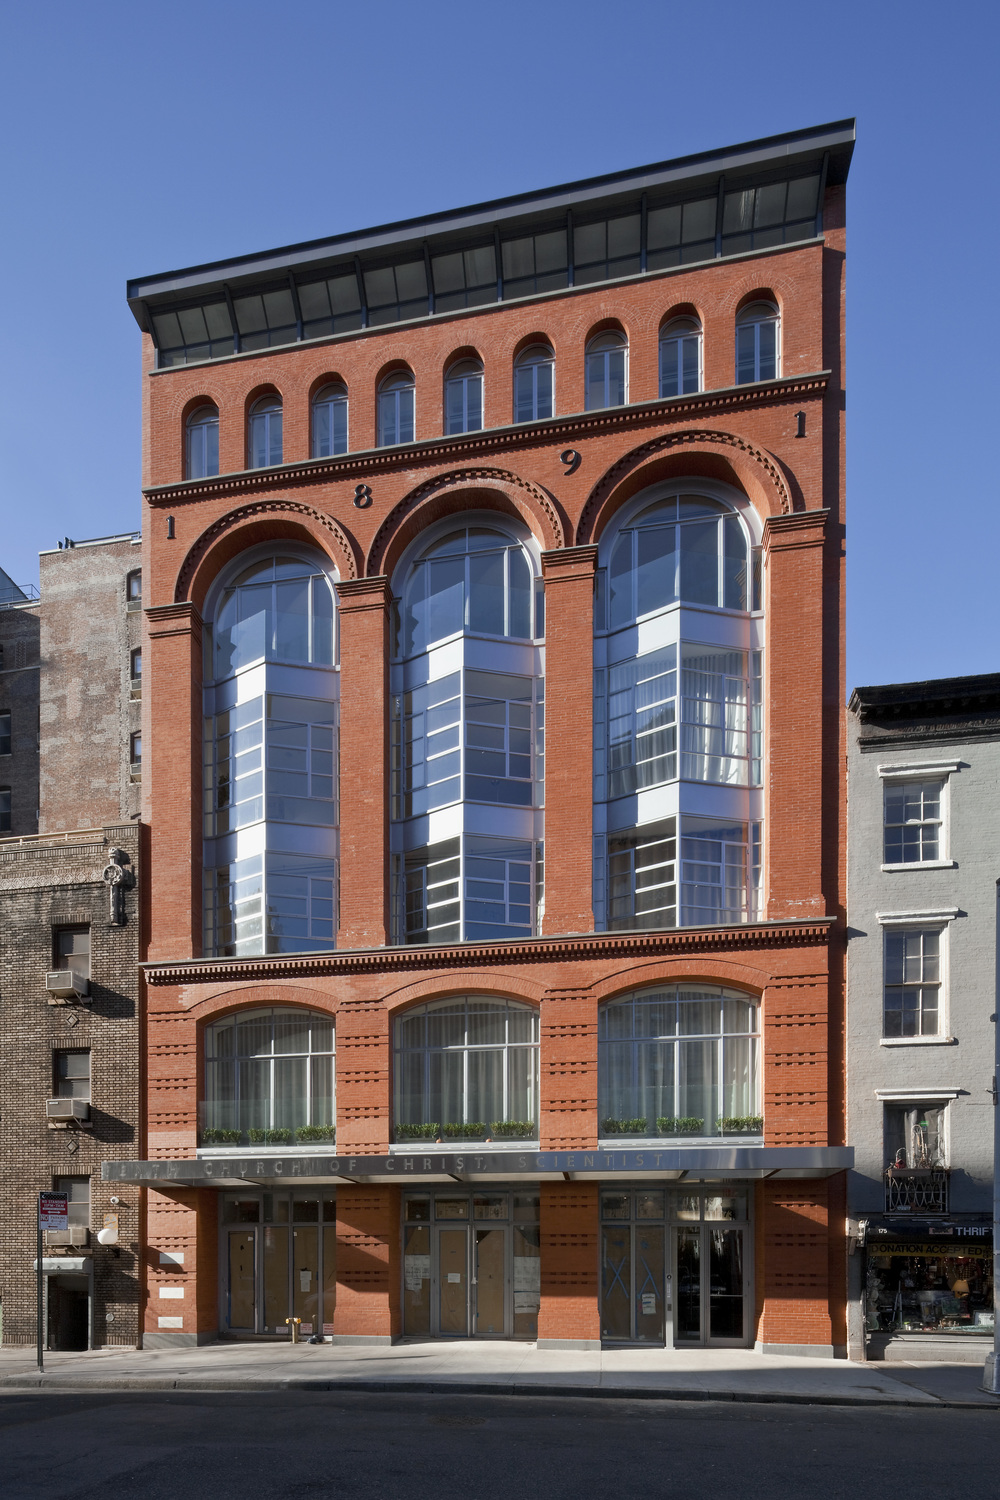 MacDougal Lofts, Greenwich Village, NYC